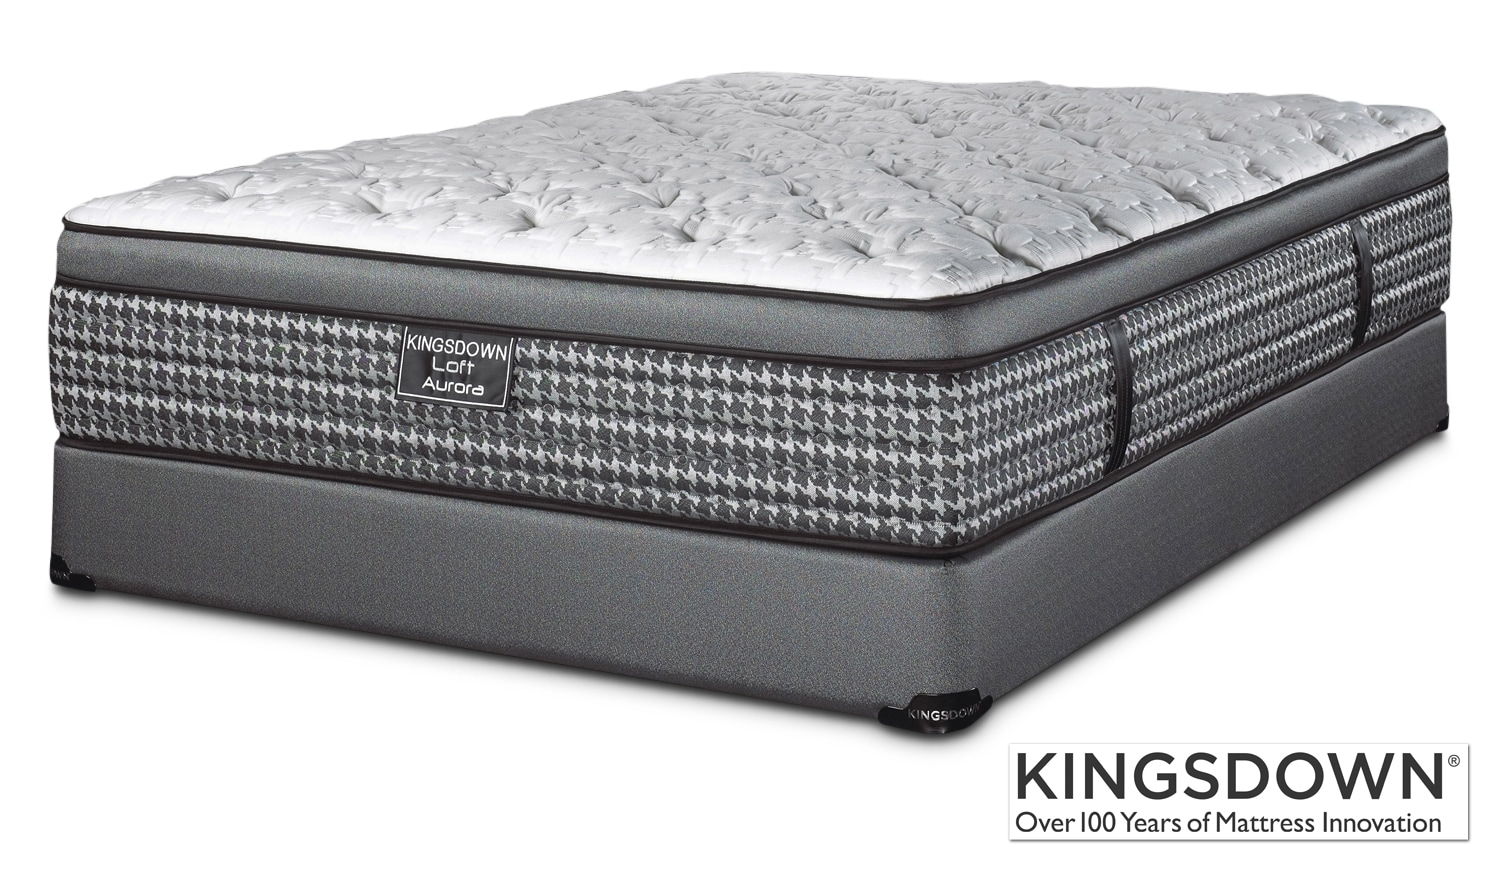 Kingsdown Aurora Queen Mattress Boxspring Set Leon 39 S